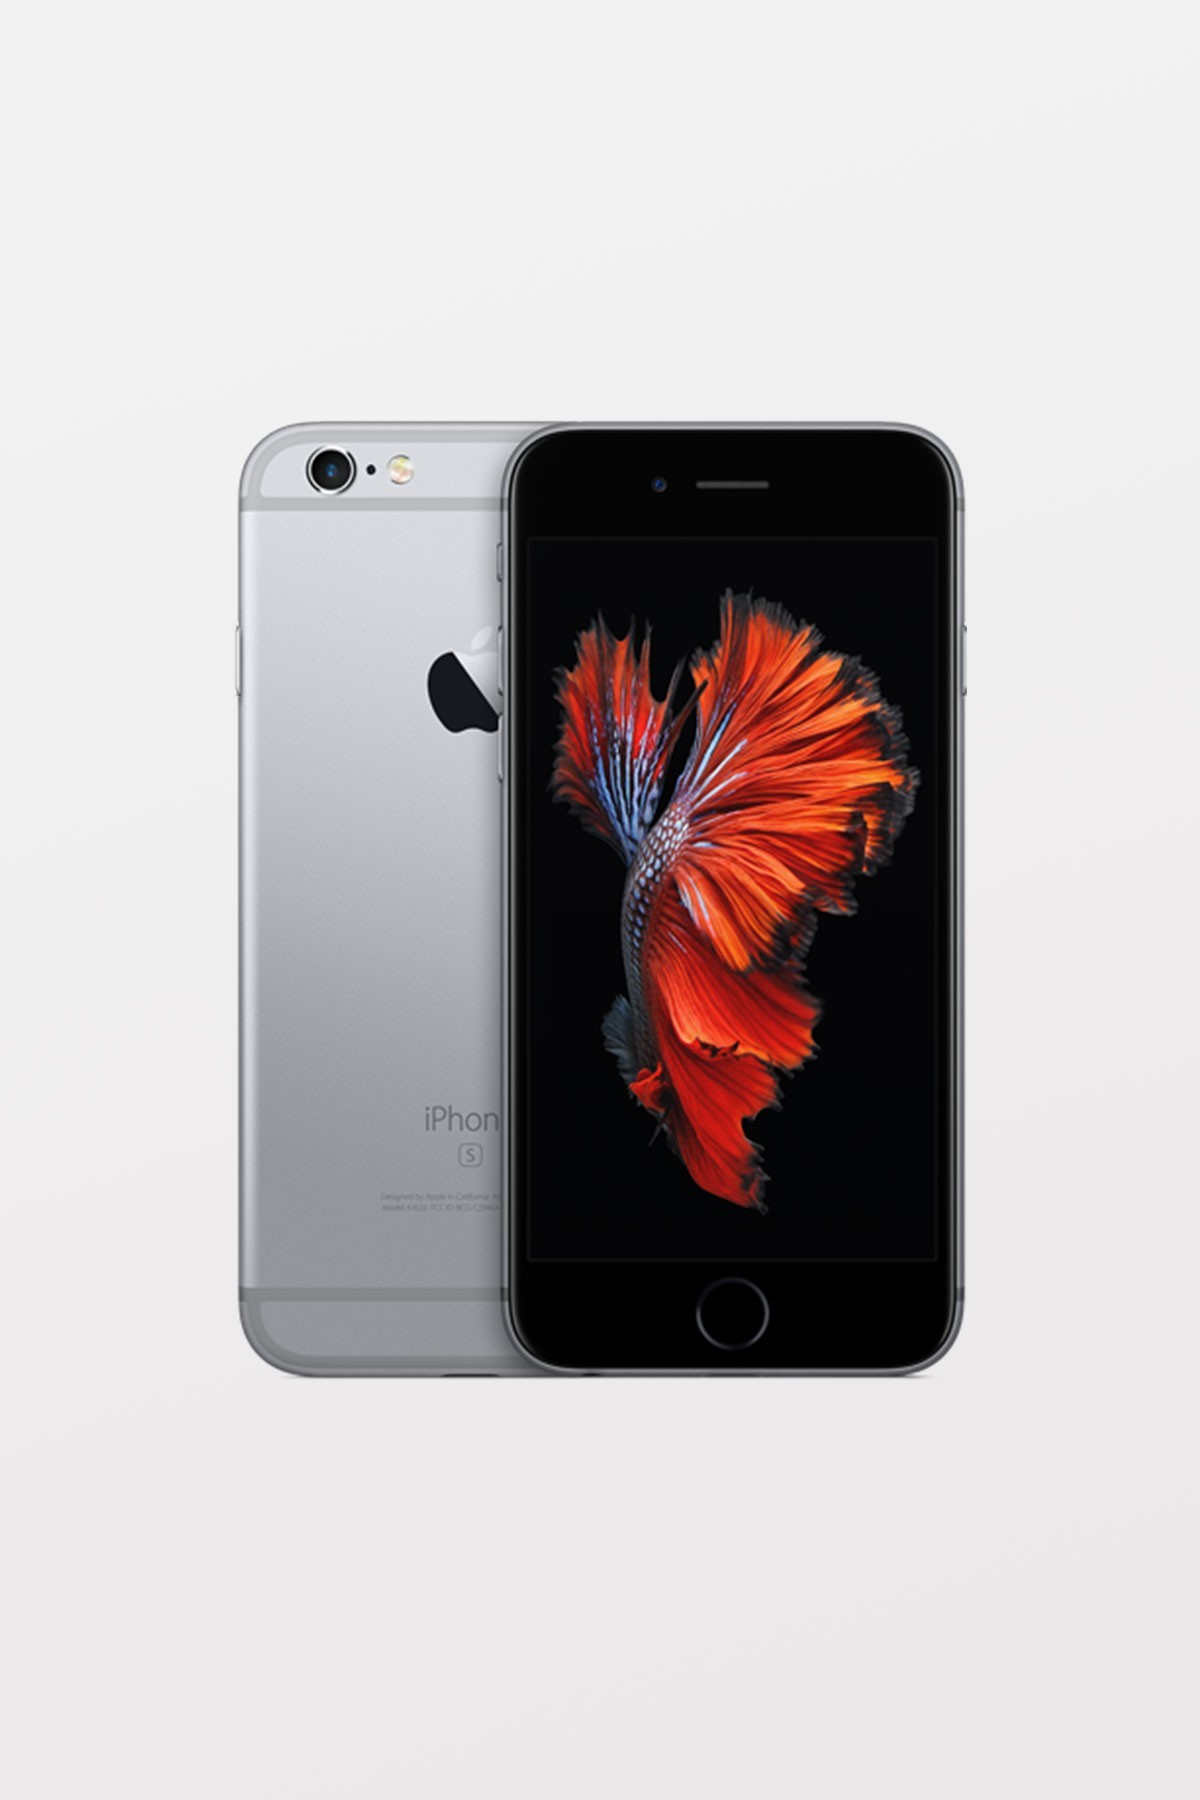 apple iphone 6s 128gb space grey refurbished refurbished iphone refurbished melbourne. Black Bedroom Furniture Sets. Home Design Ideas